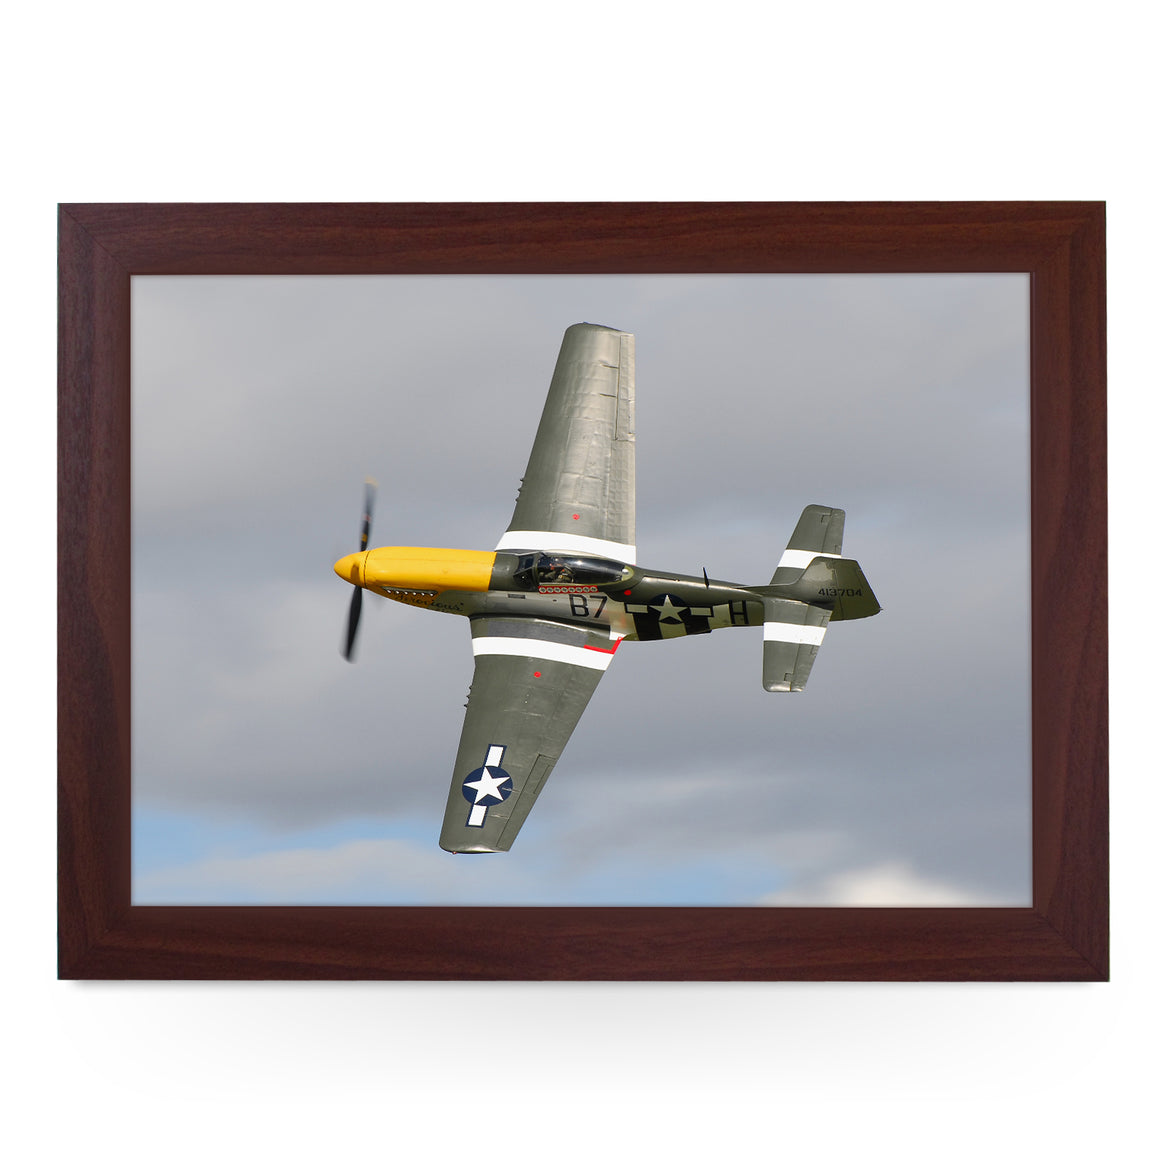 North American Aviation P-51 Mustang Plane Lap Tray - AD12155